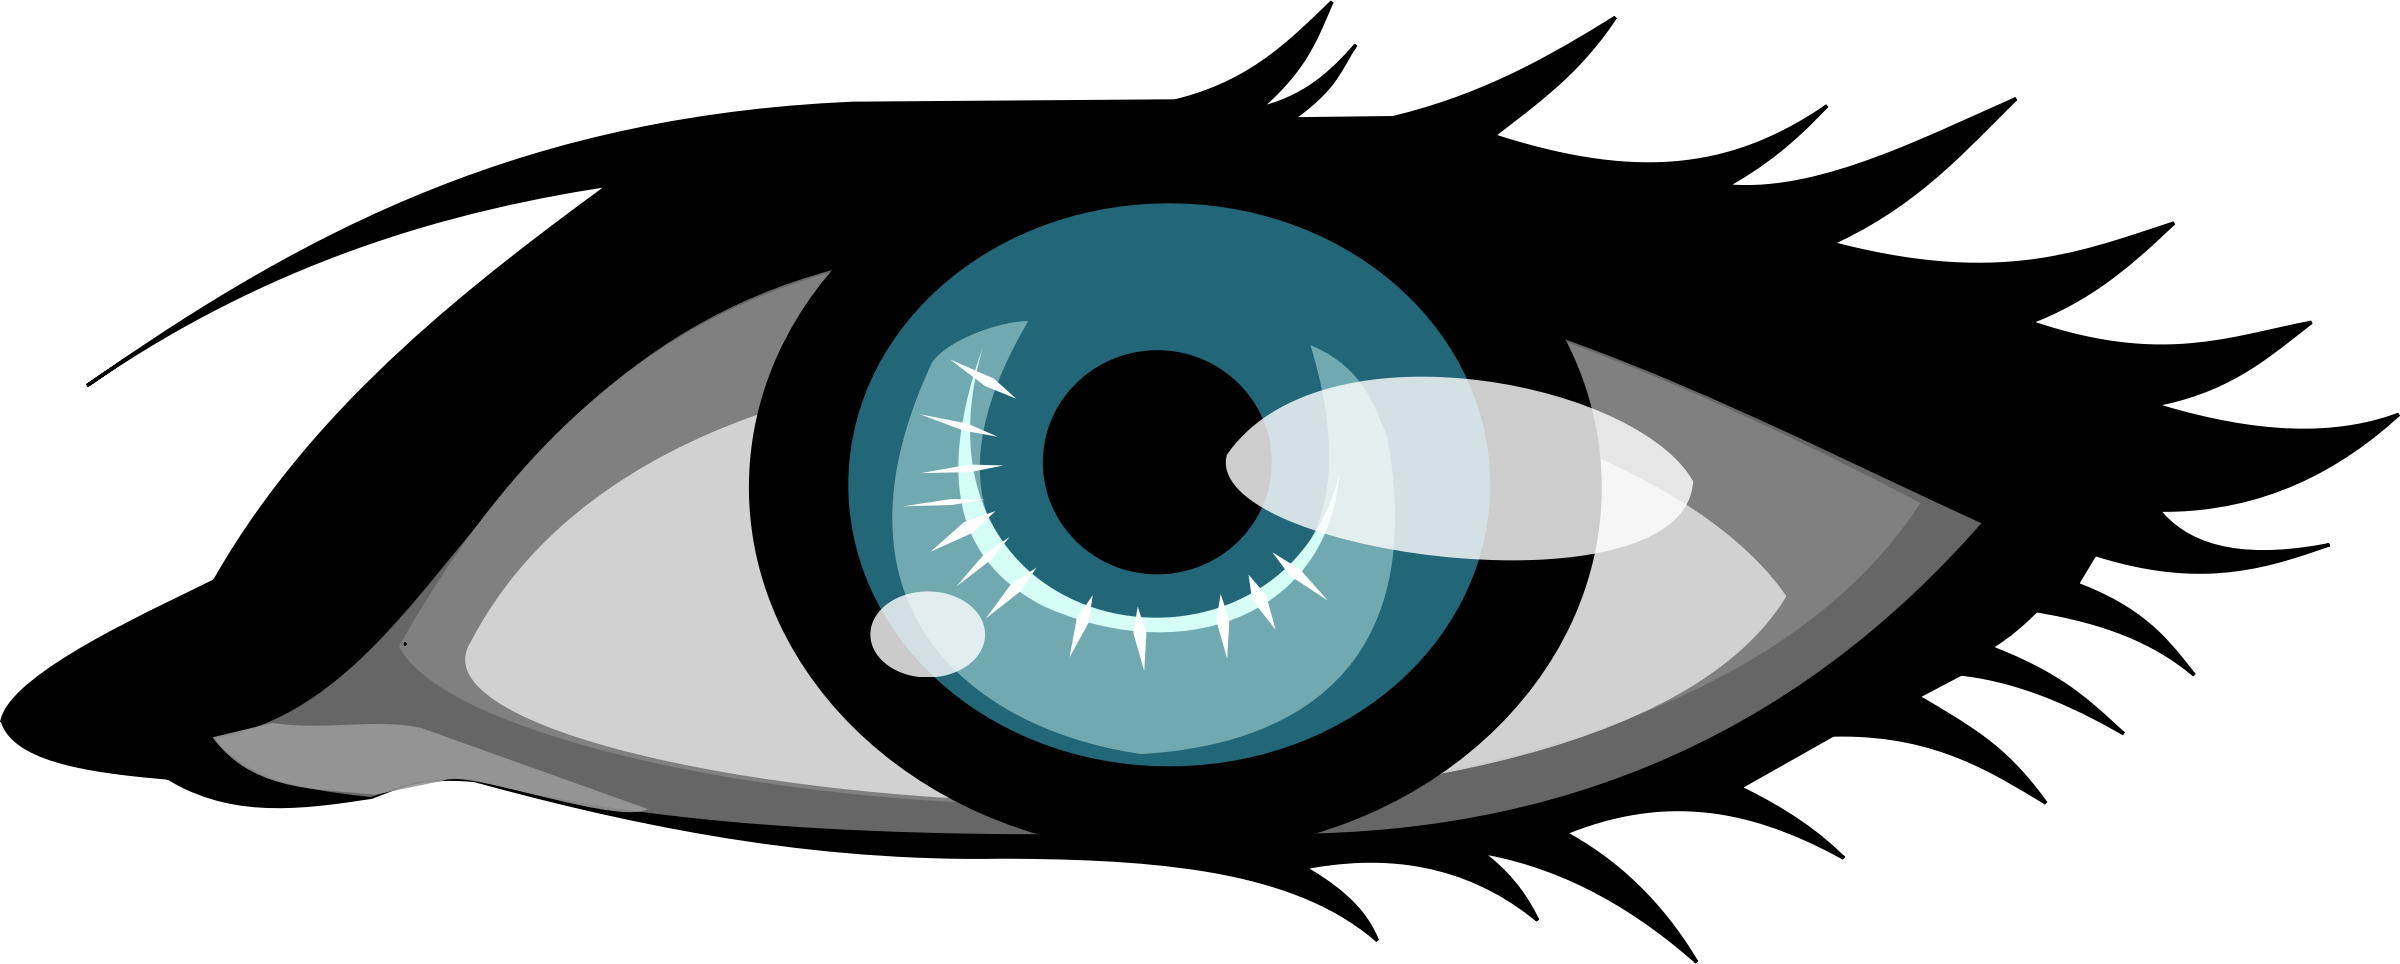 Picture clipart eye. Big image png